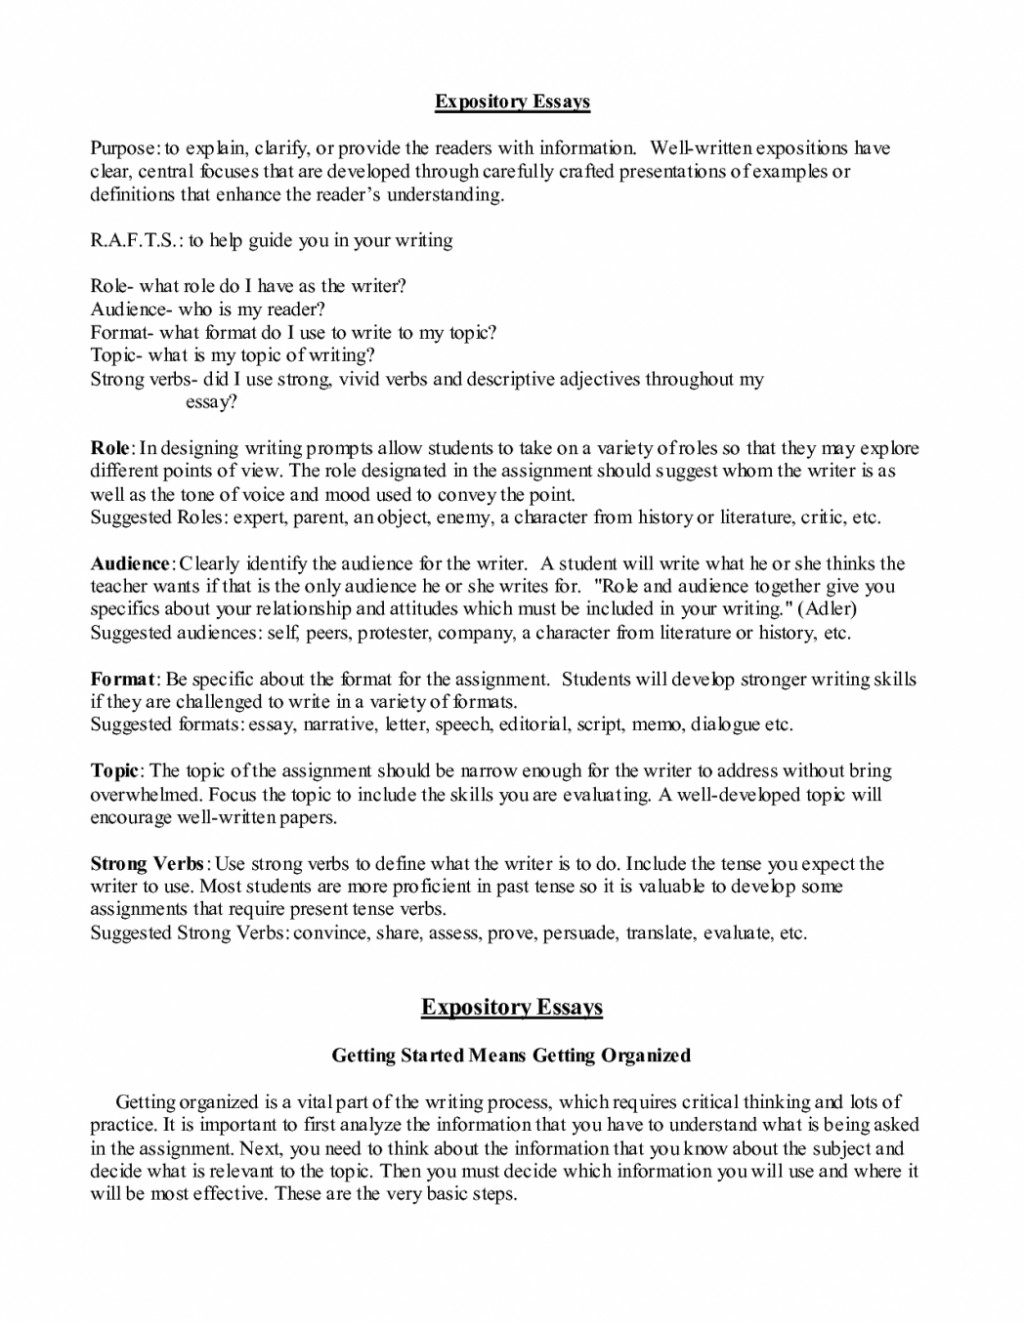 017 Essay Example Essays For Grade History Examples How To Write Review On Book Thesis Statement Template Nfr University Outline High School Introduction Conclusion Gcse Awesome 8 English 8th Graders Narrative Large